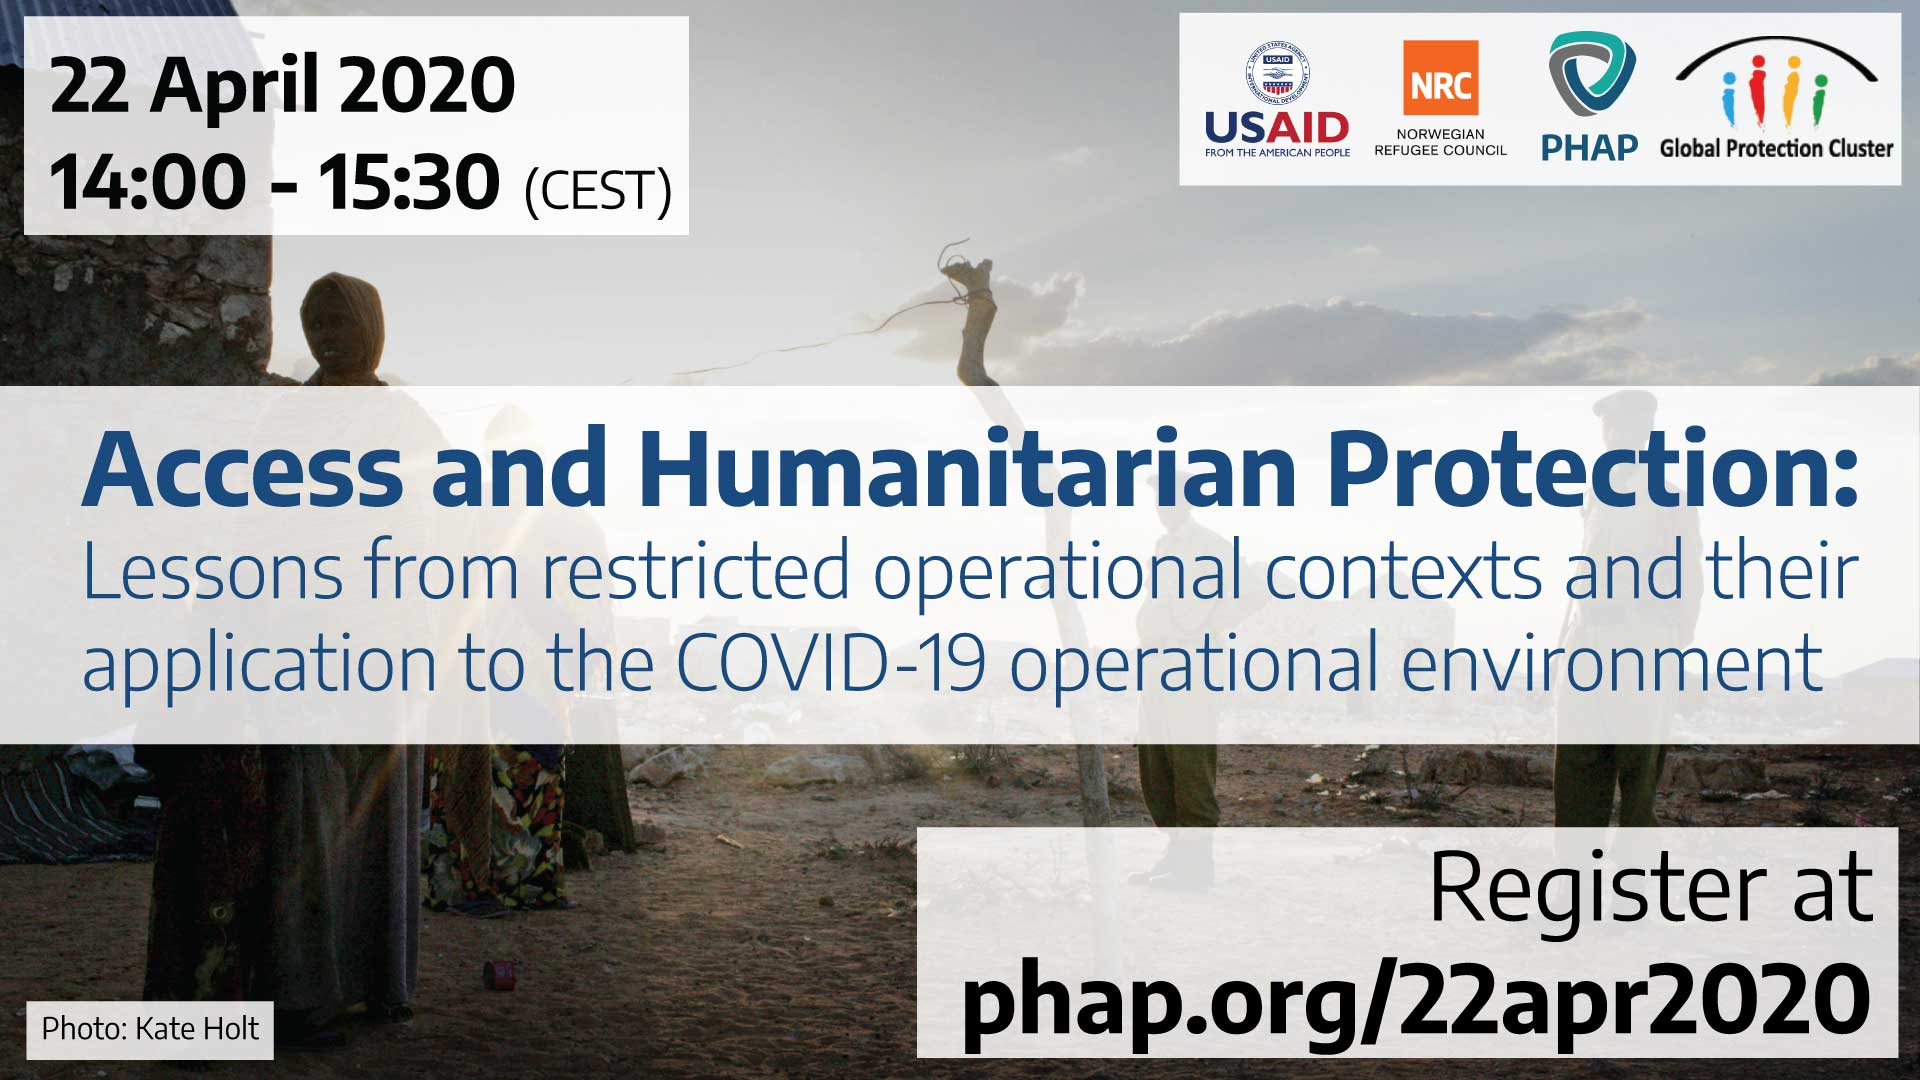 Banner for the webinar Access and Humanitarian Protection: Lessons from restricted operational contexts and their application to the COVID-19 operational environment